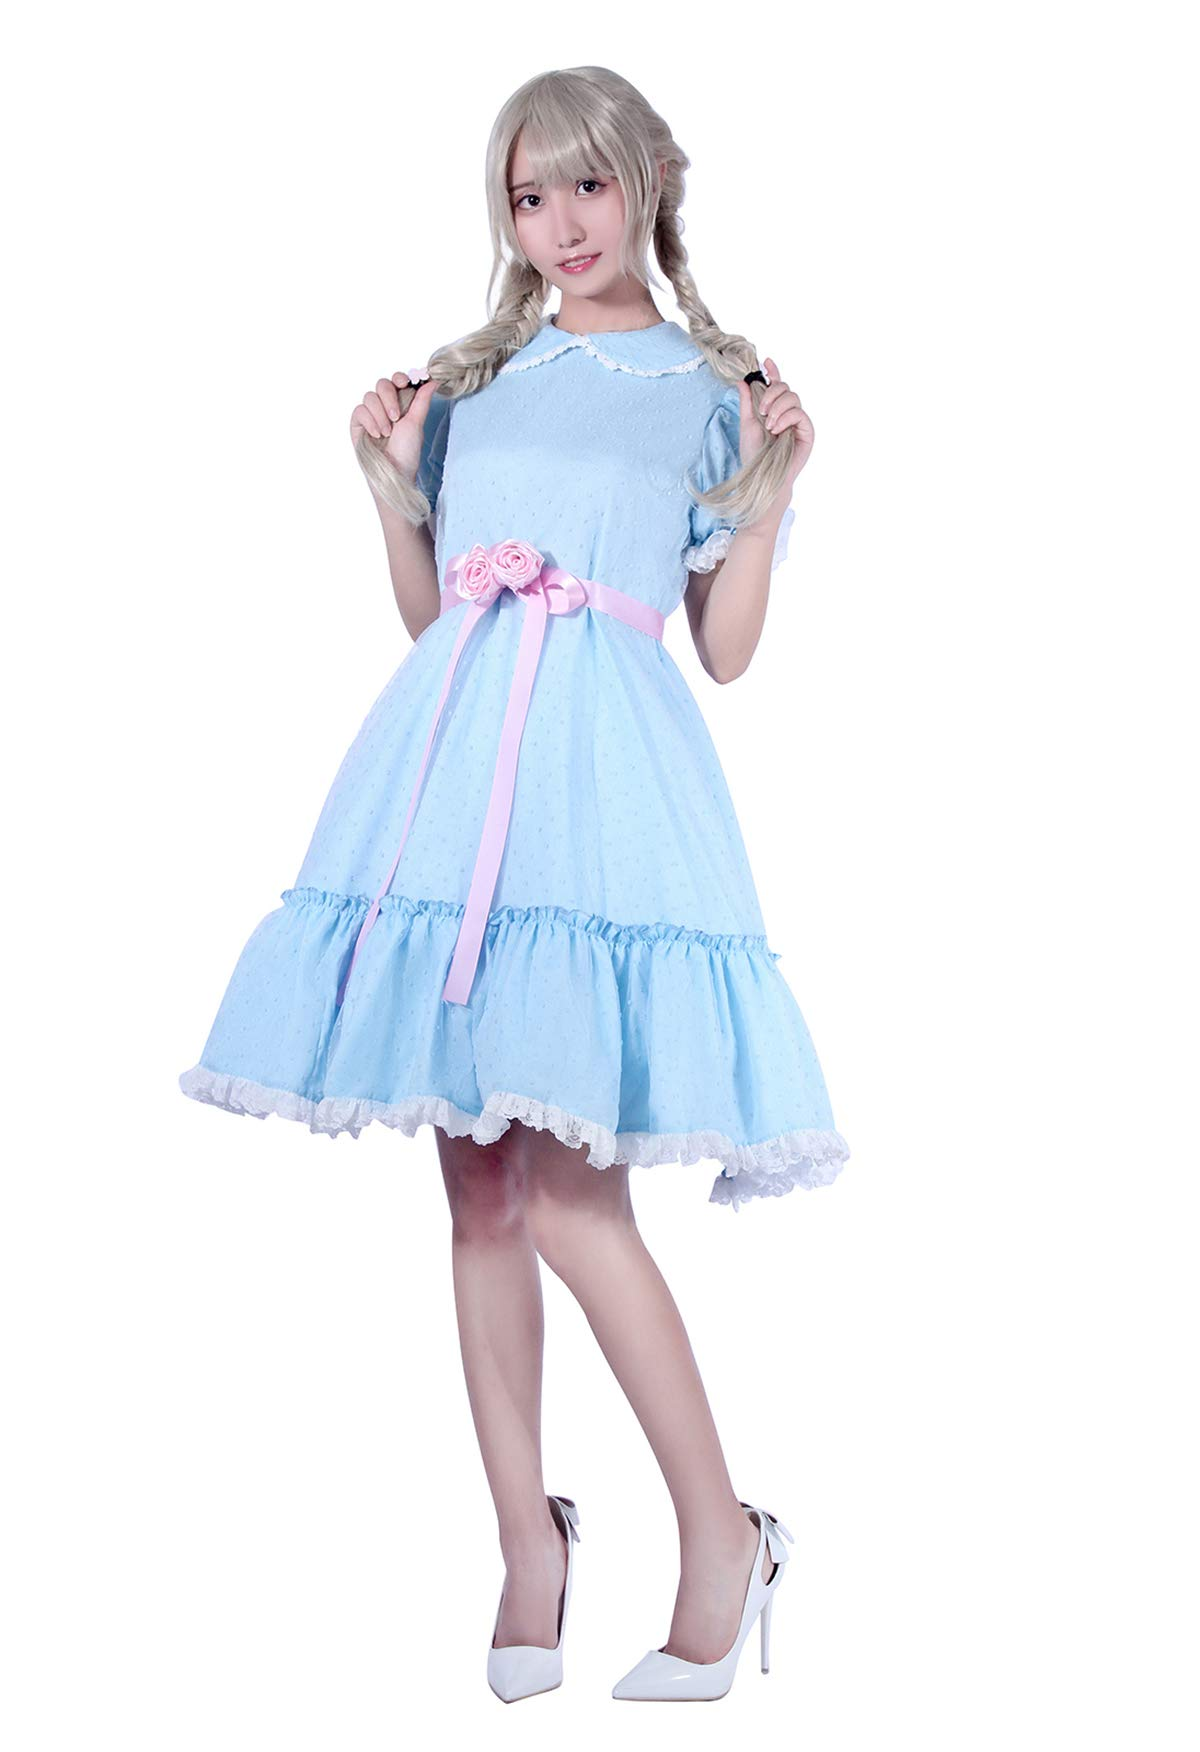 Women's Sweet Lolita Dress Blue Cotton Bow Puff Skirts Halloween Costumes by Nuoqi (Image #1)